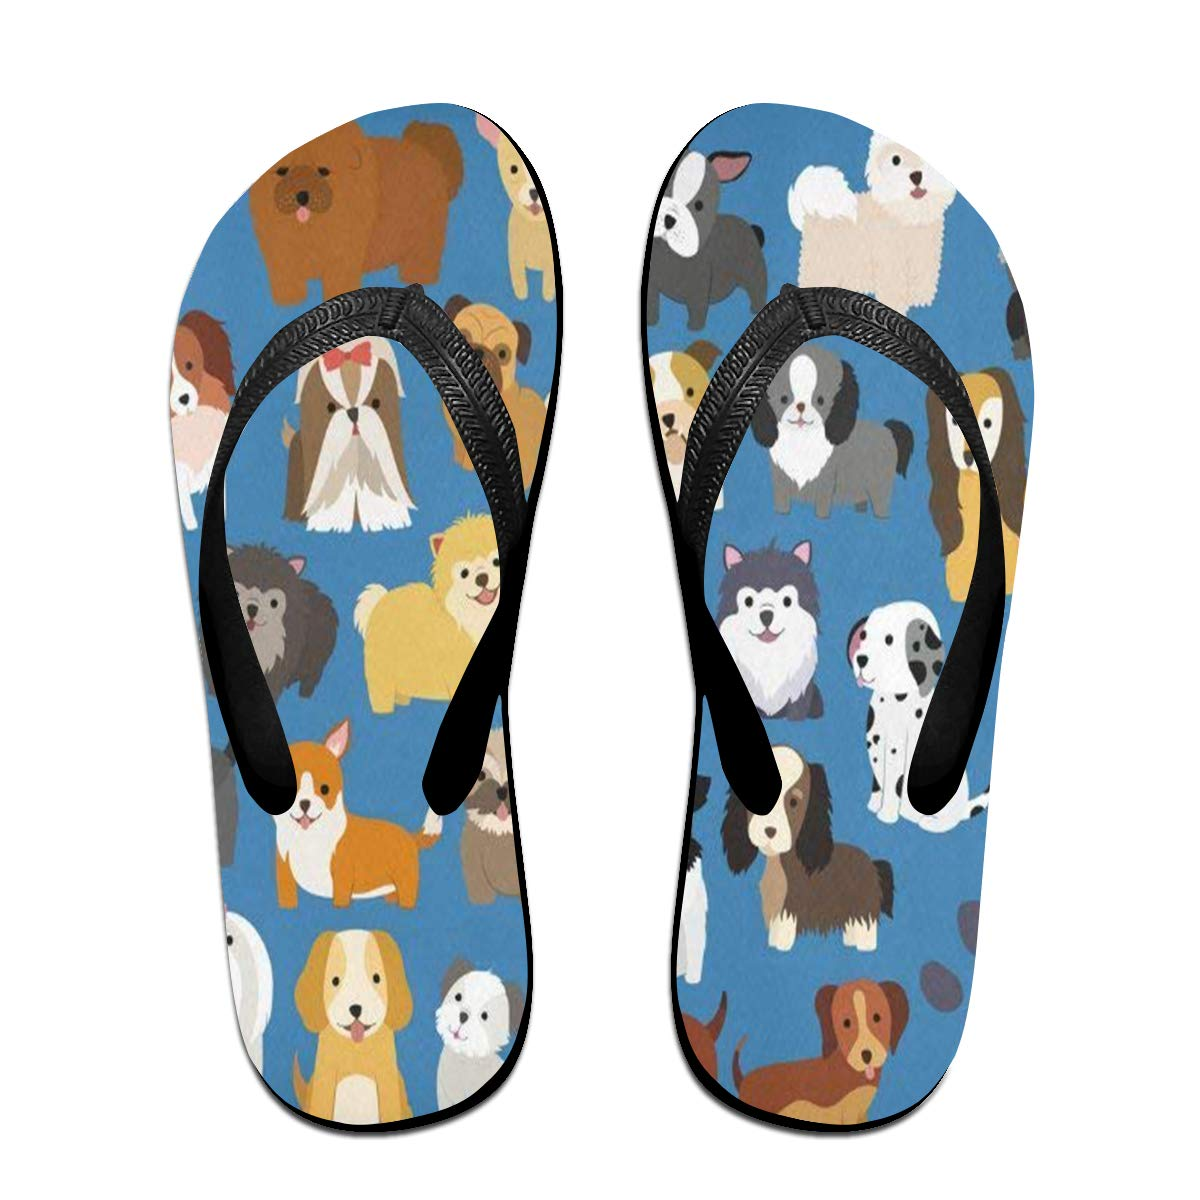 0dbb7fb24635 Amazon.com  Flip Flops Sailing Ships Ocean Women s Beach Slippers Brazil  Sandals For Woman  Clothing